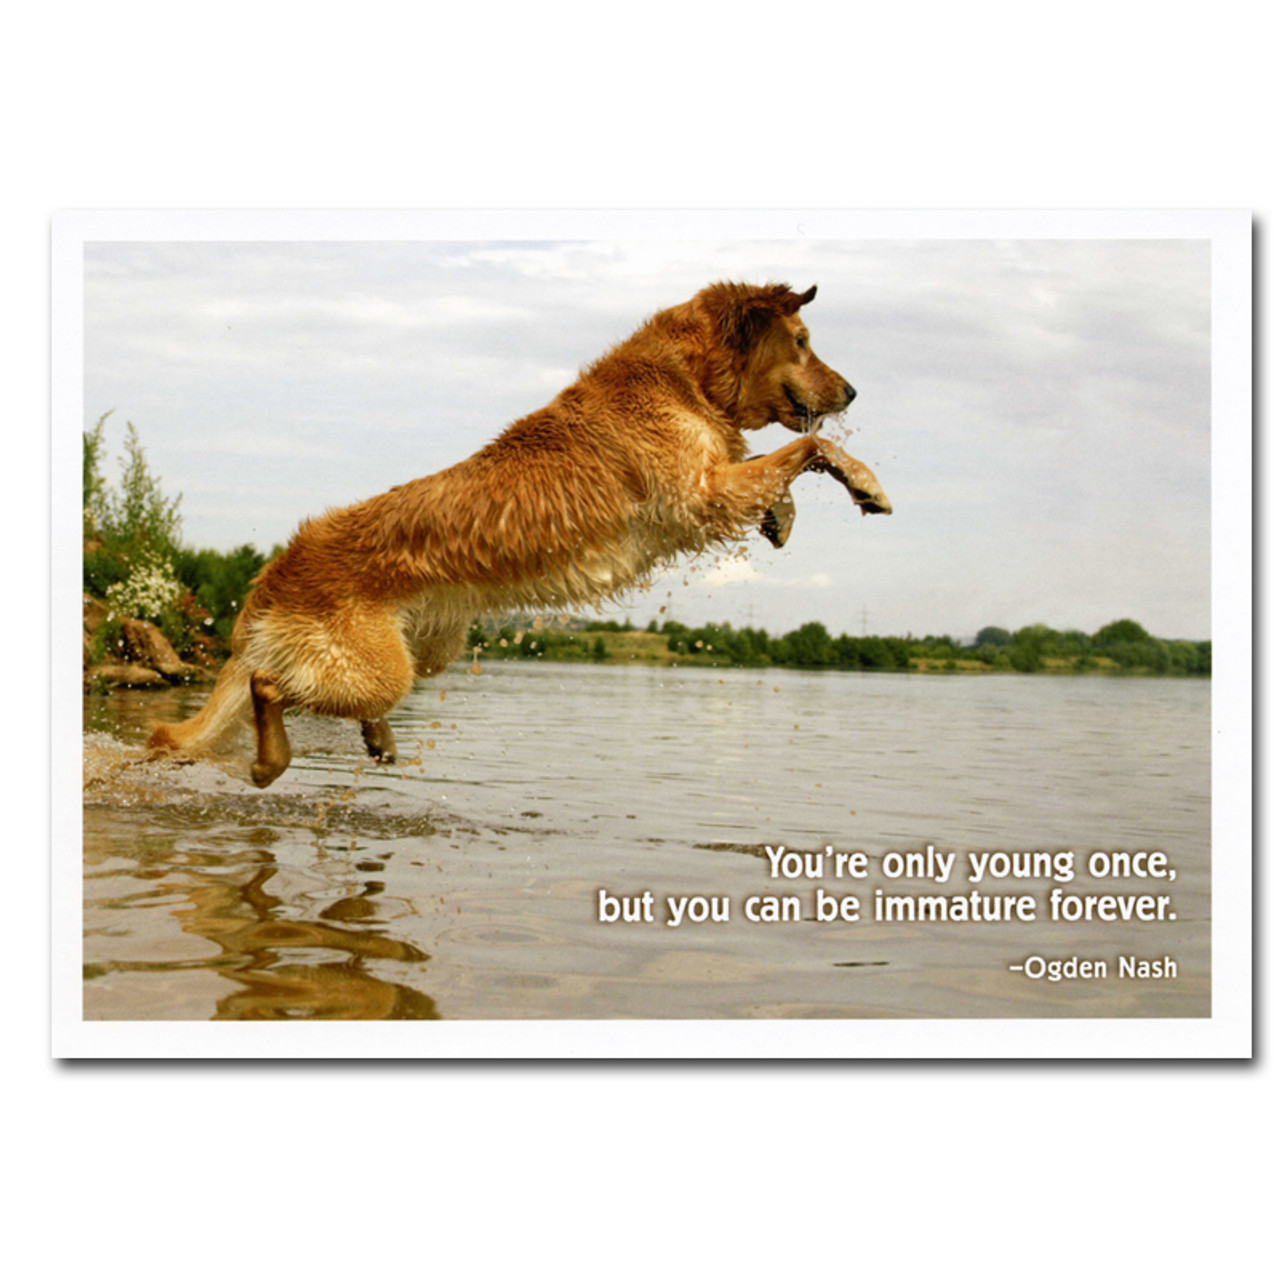 """Boxed Business Birthday Card - Immature Ogden Nash Quotation Cover with photo of dog jumping into water and Ogden Nash quotation """" You're only young once but you can be immature forever!"""""""